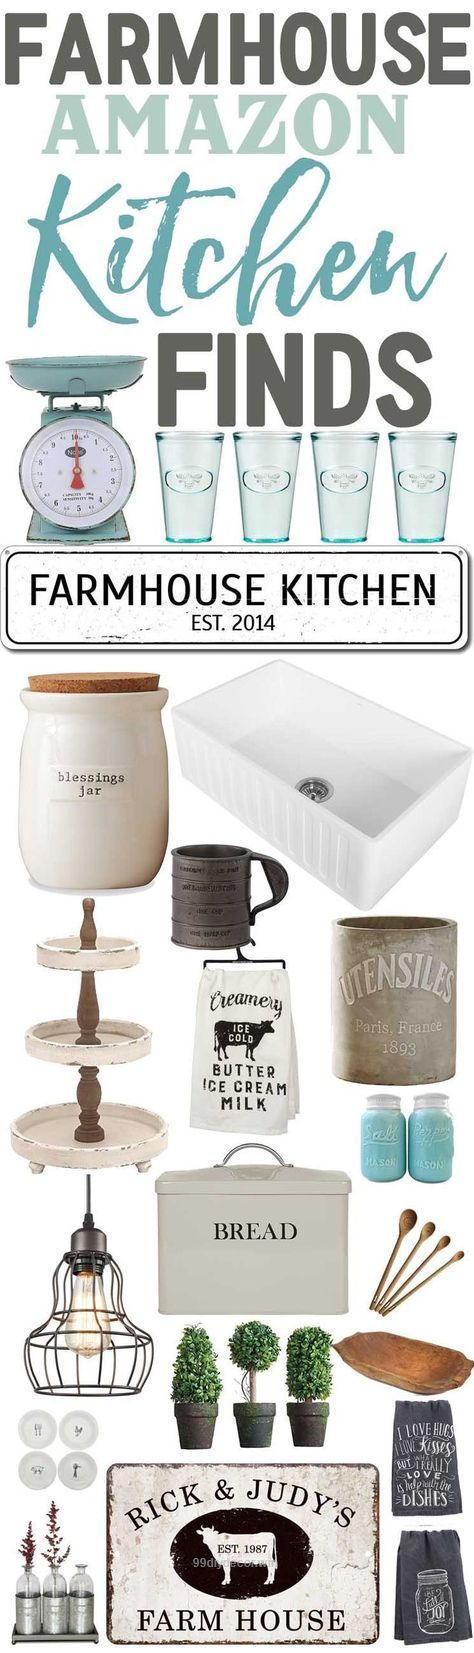 Farmhouse Kitchen Finds From AmazonAffordable Farmhouse